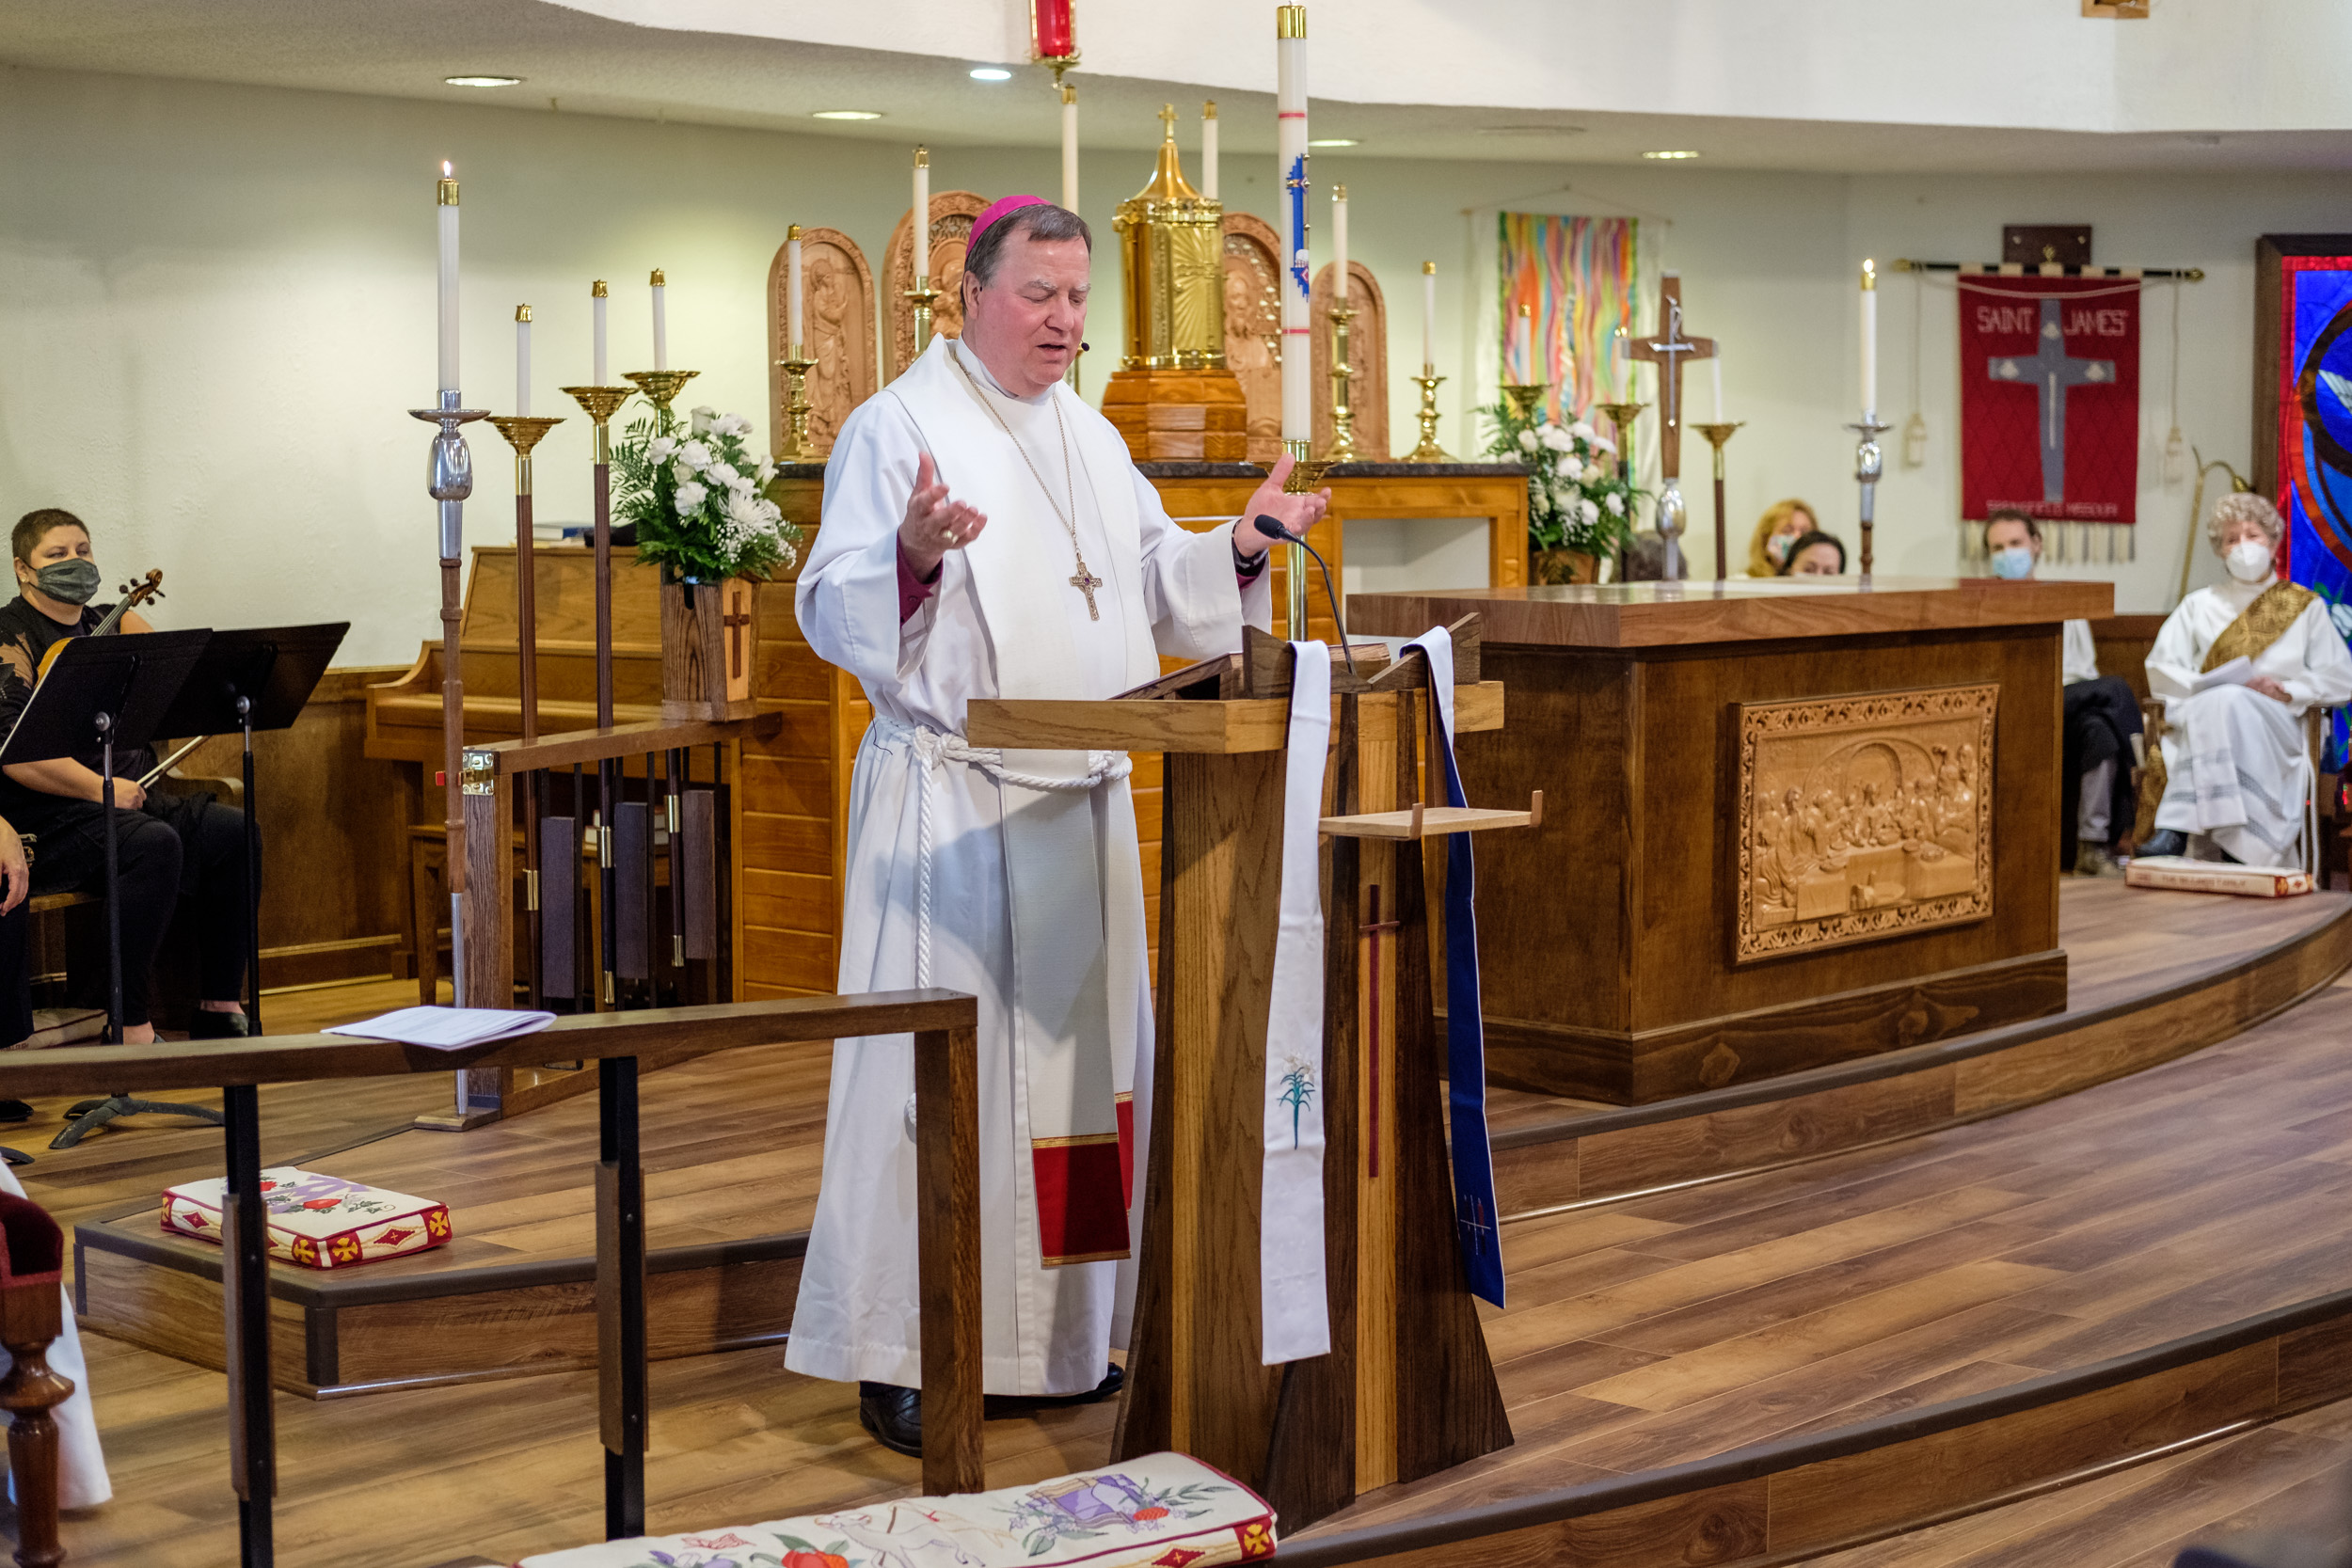 Bishop Marty's sermon for the re-dedication of St. James Episcopal Church, Springfield, May 12, 2021